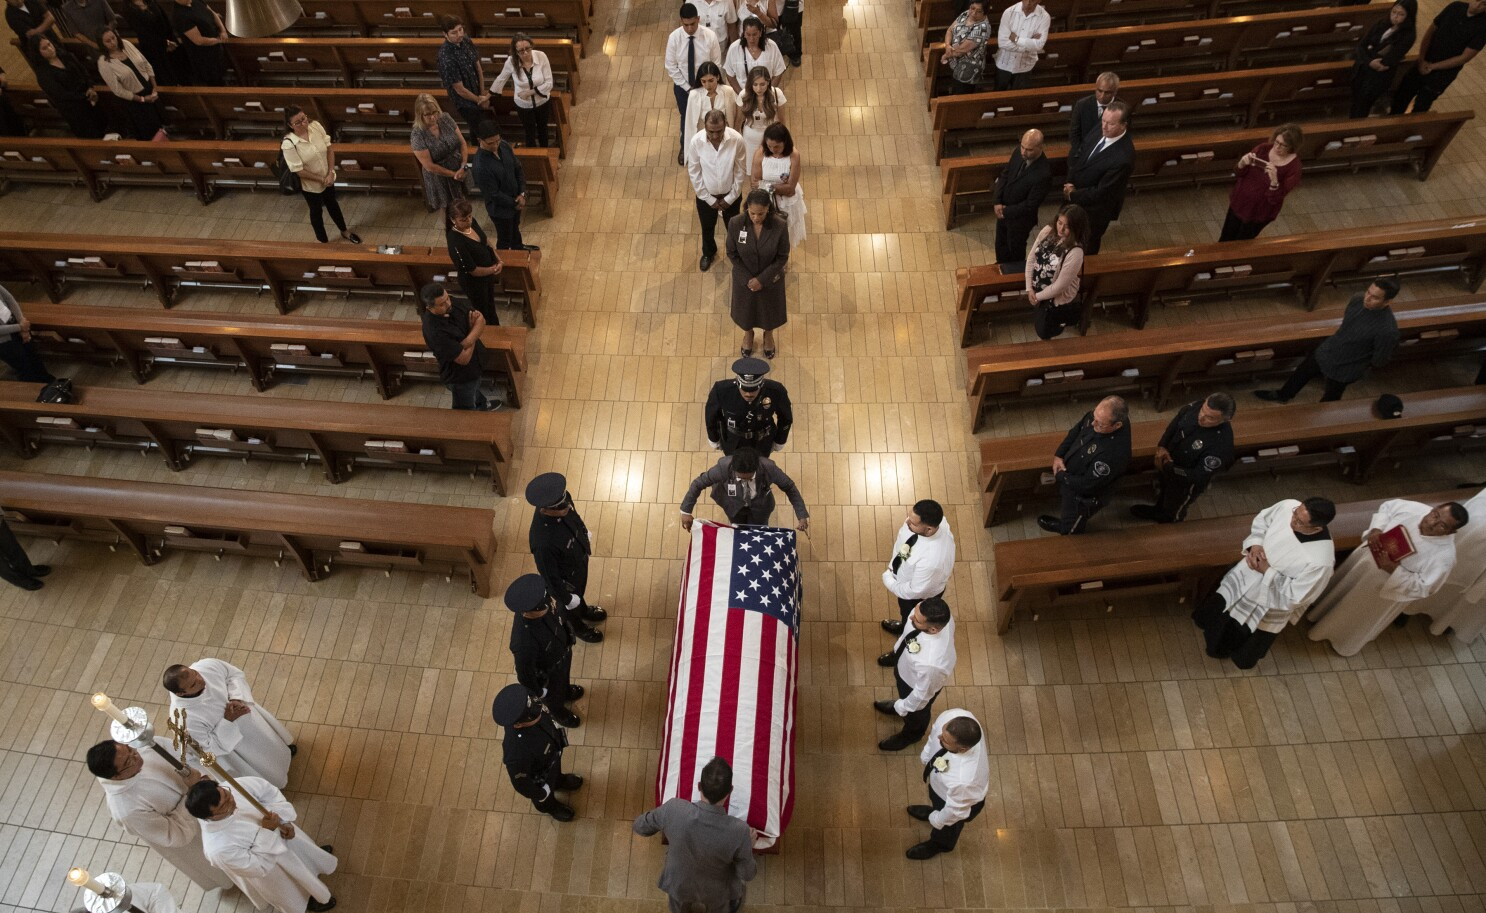 Thousands honor slain 24-year-old LAPD officer who wanted to make a difference in city